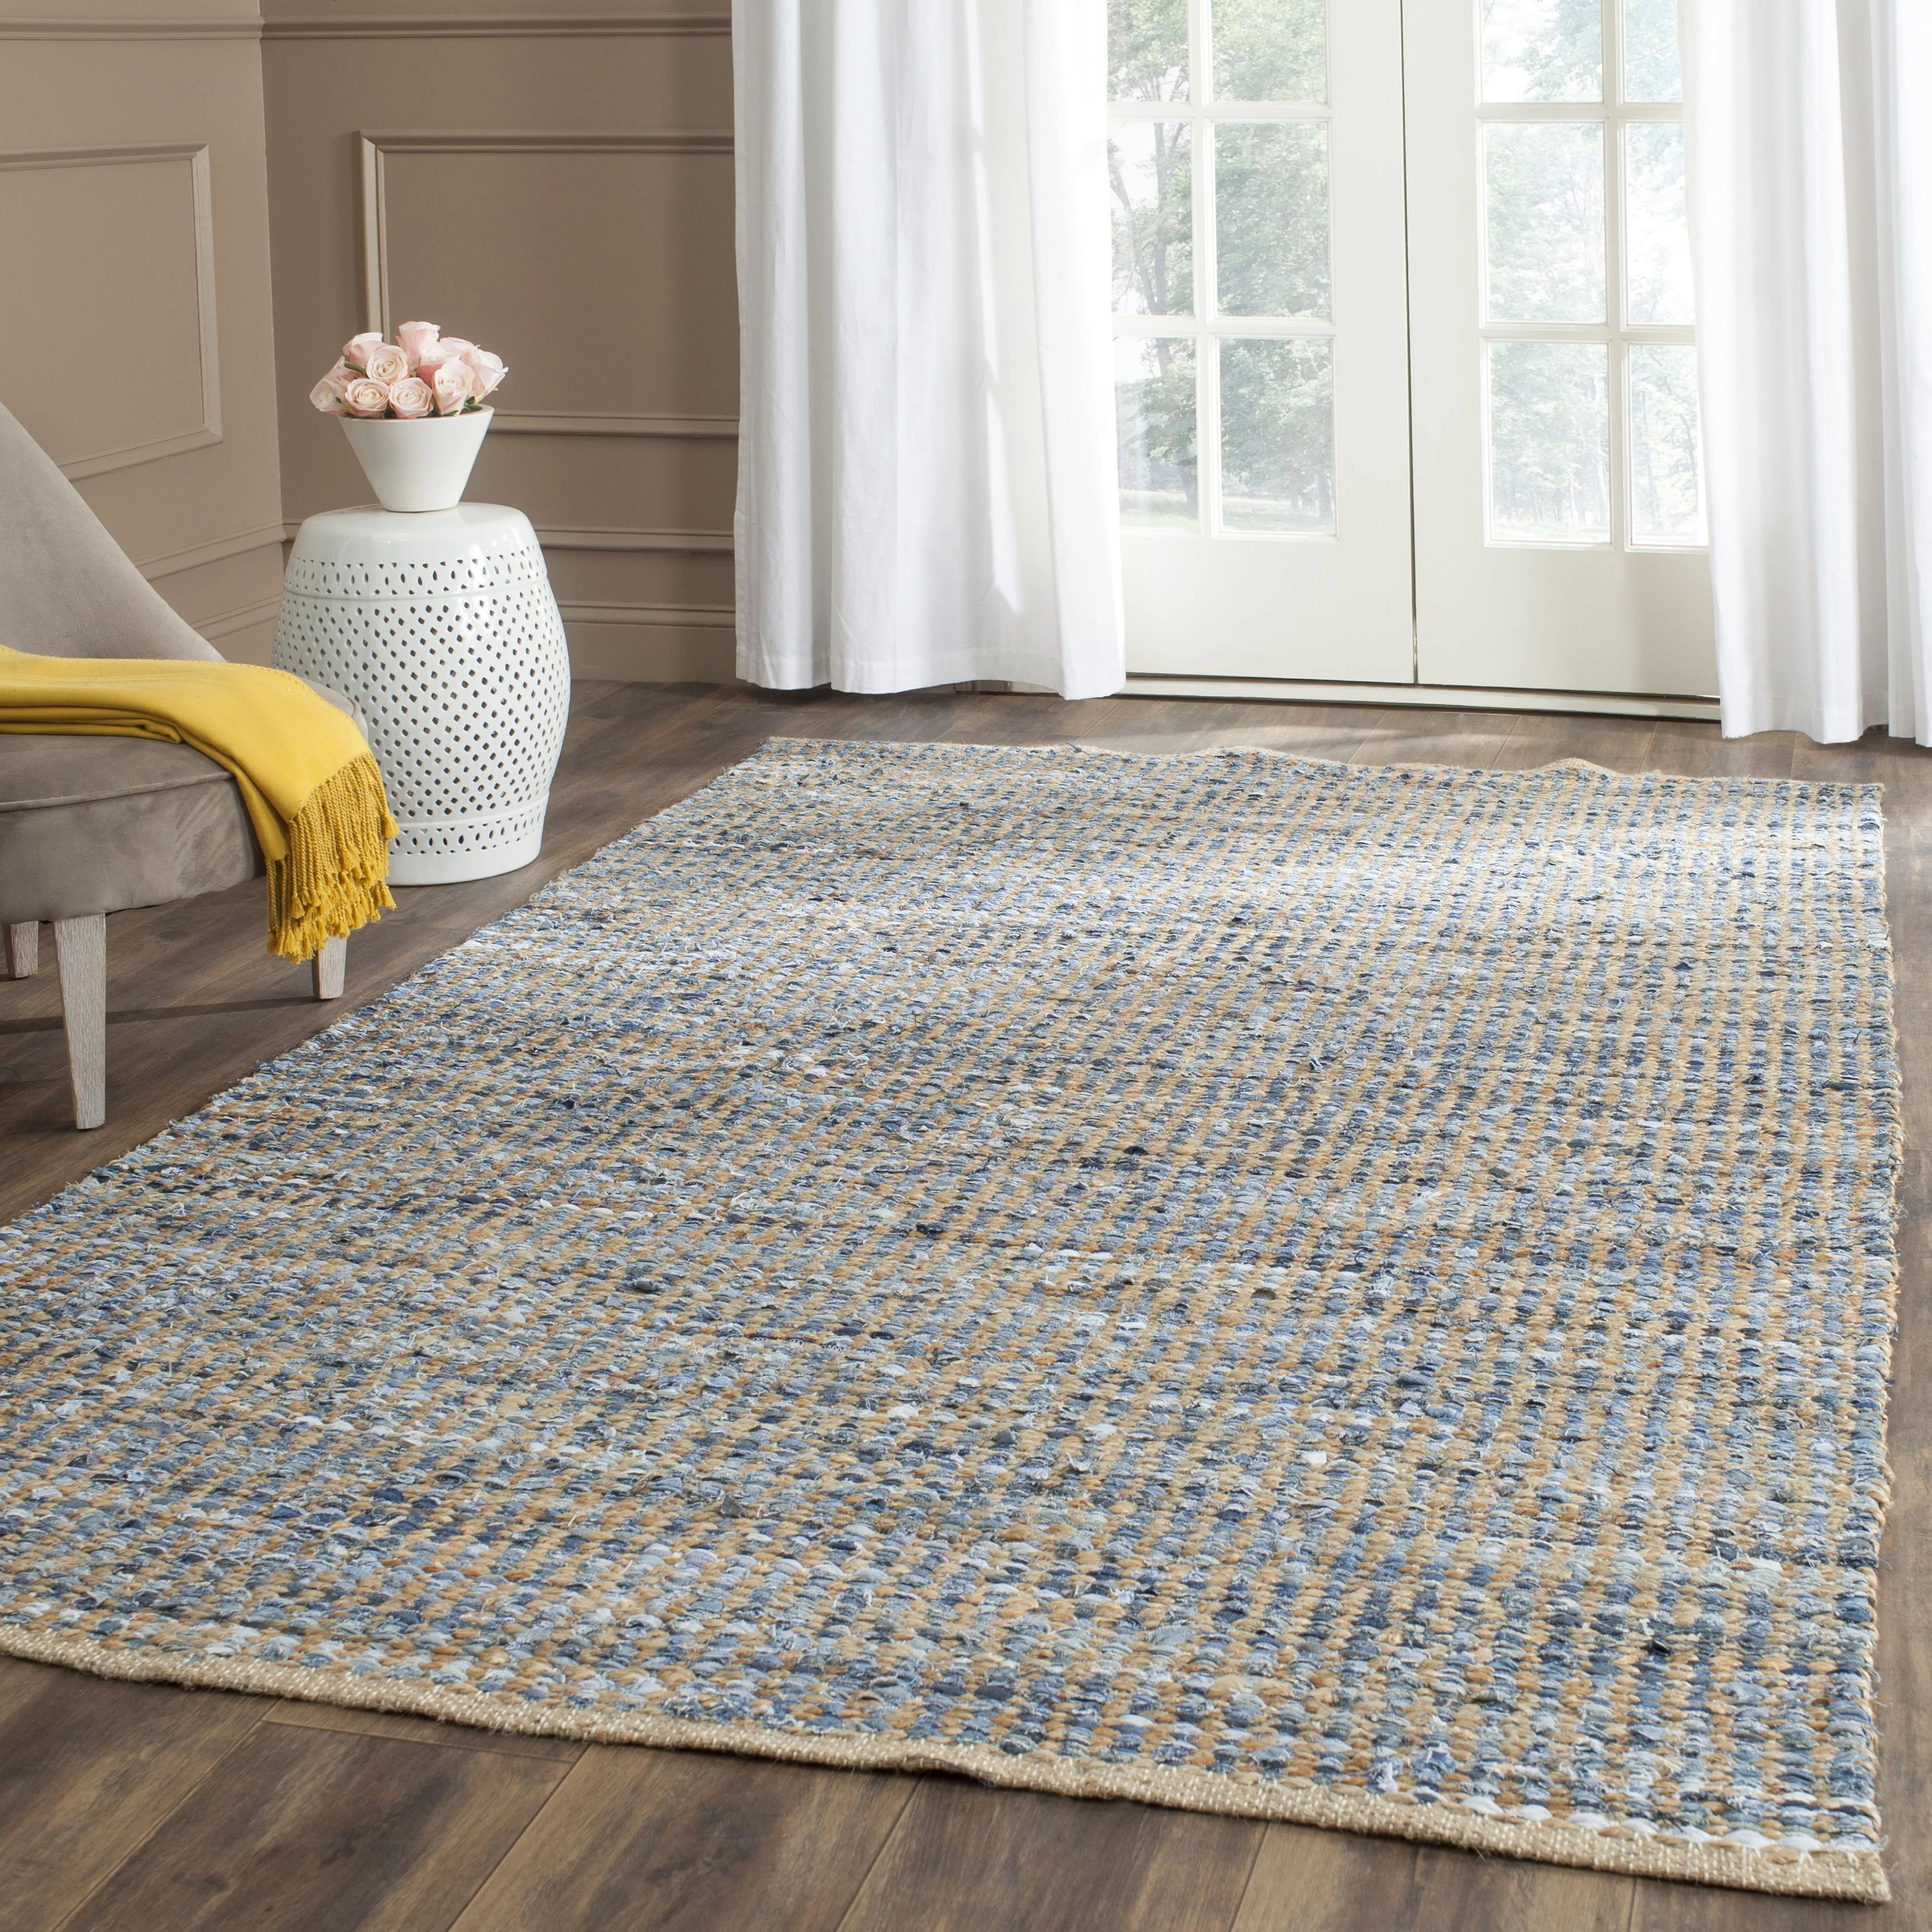 8 x 10 blue area rugs you ll love in